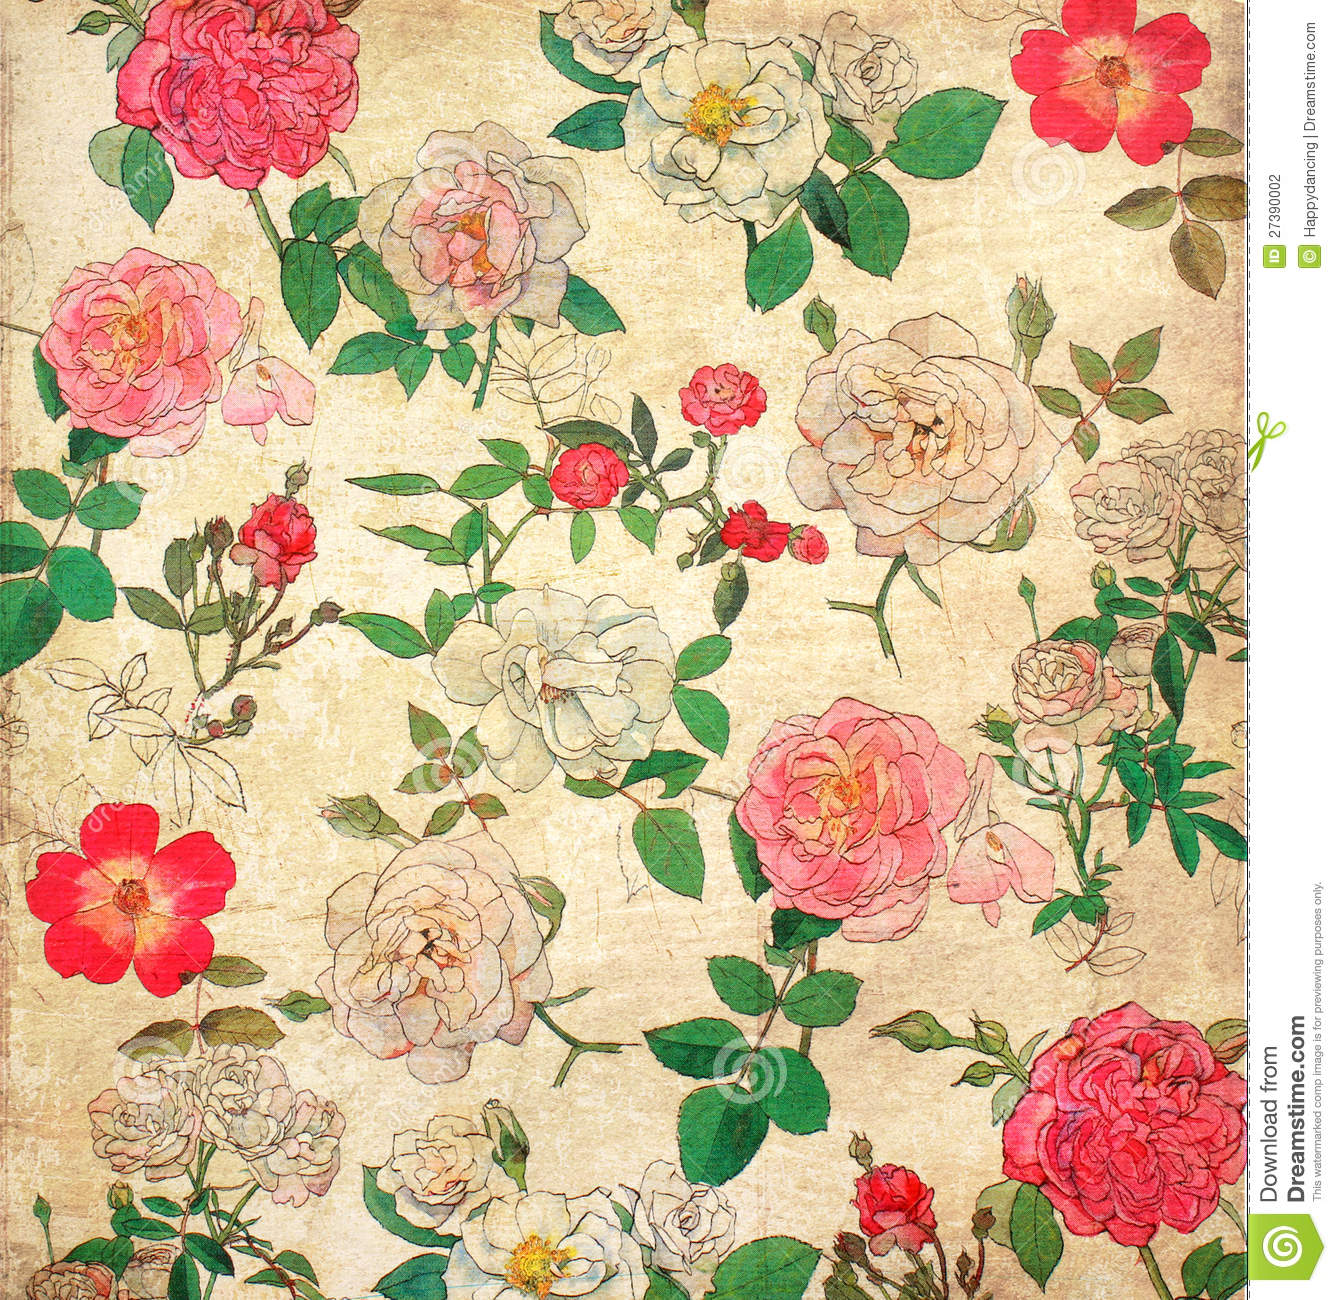 Floral Vintage Wallpaper Stock Photo Image Of Floral 27390002